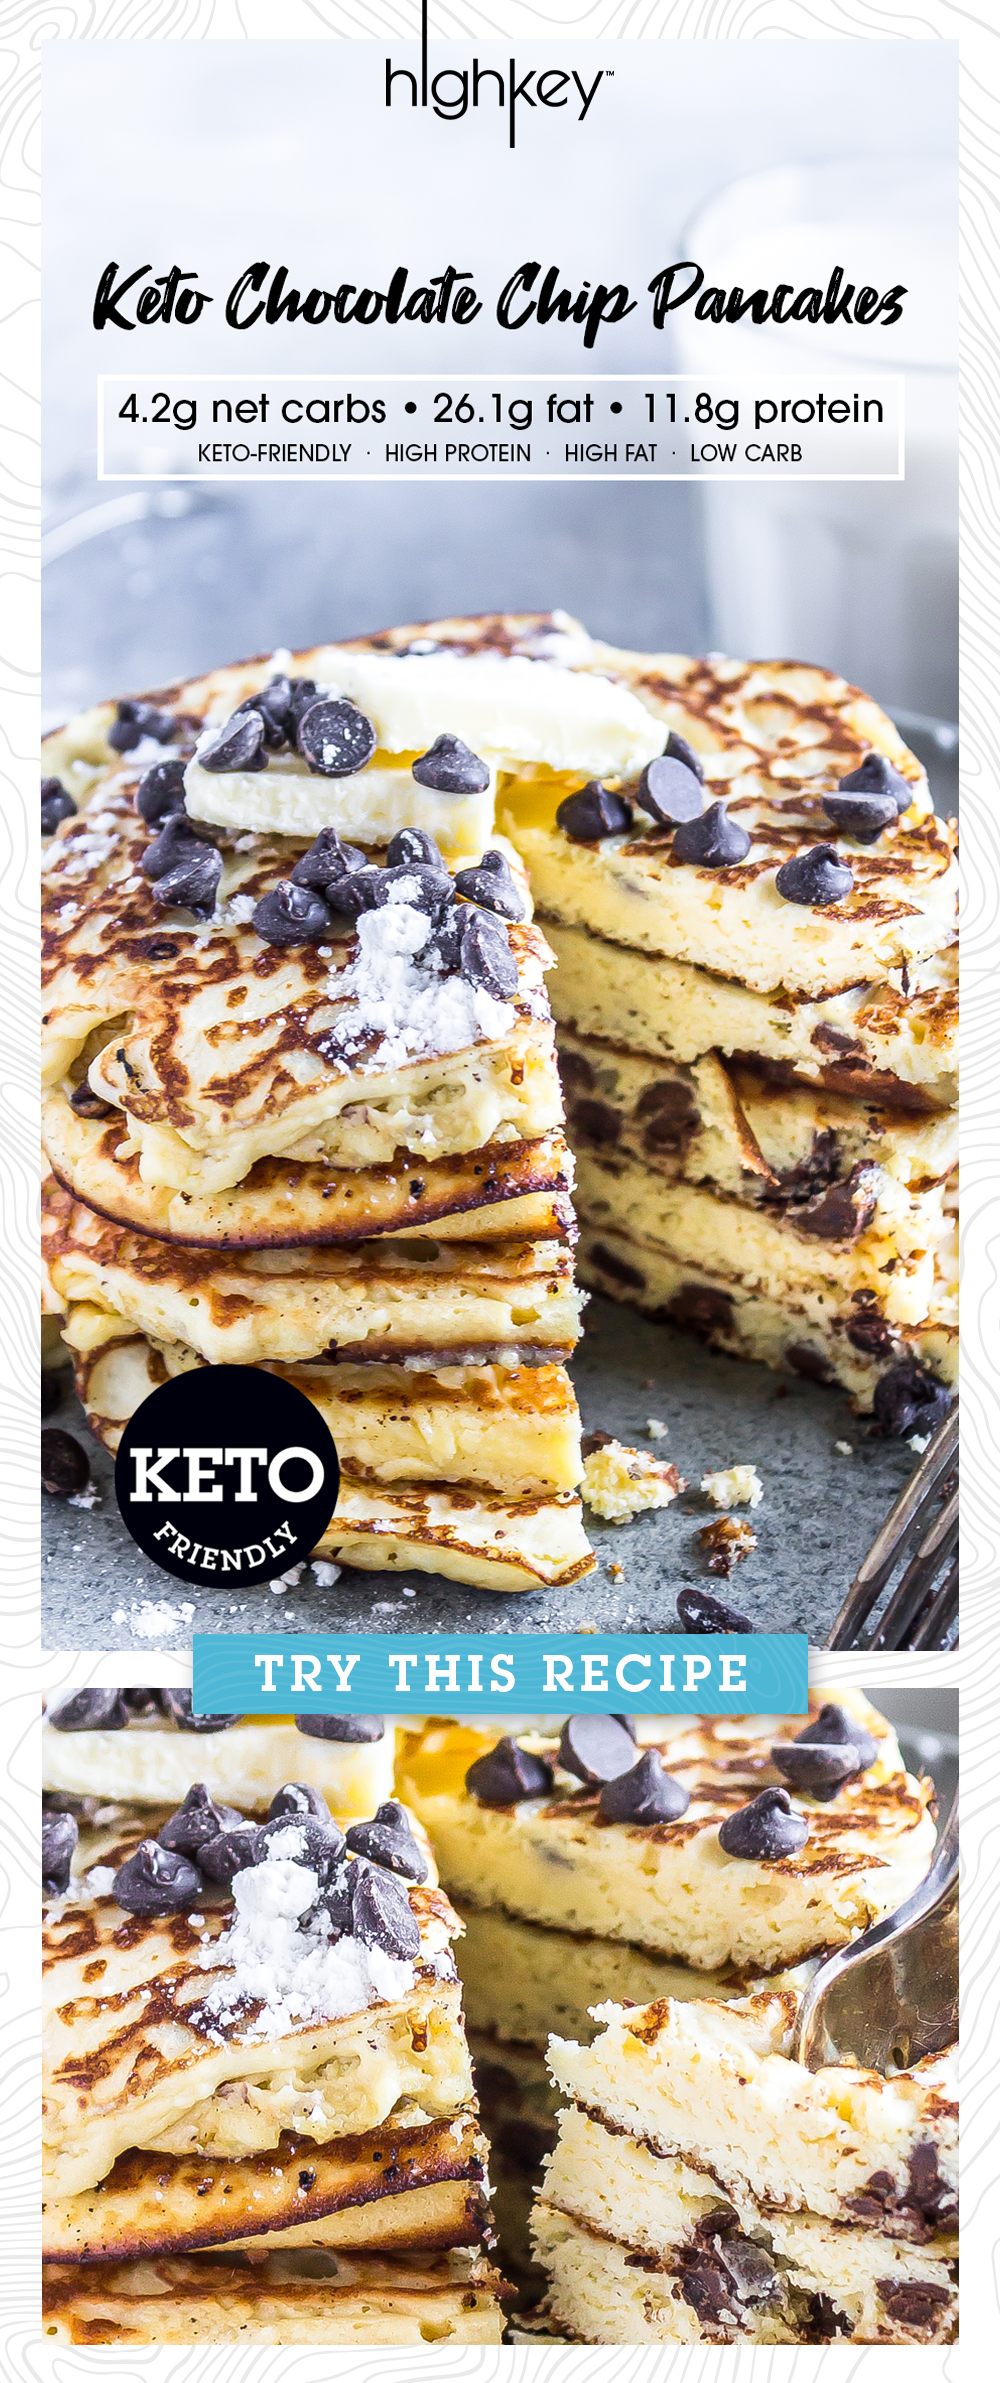 pin this higkey recipe for keto friendly chocolate chip pancakes perfect for a saturday morning with family